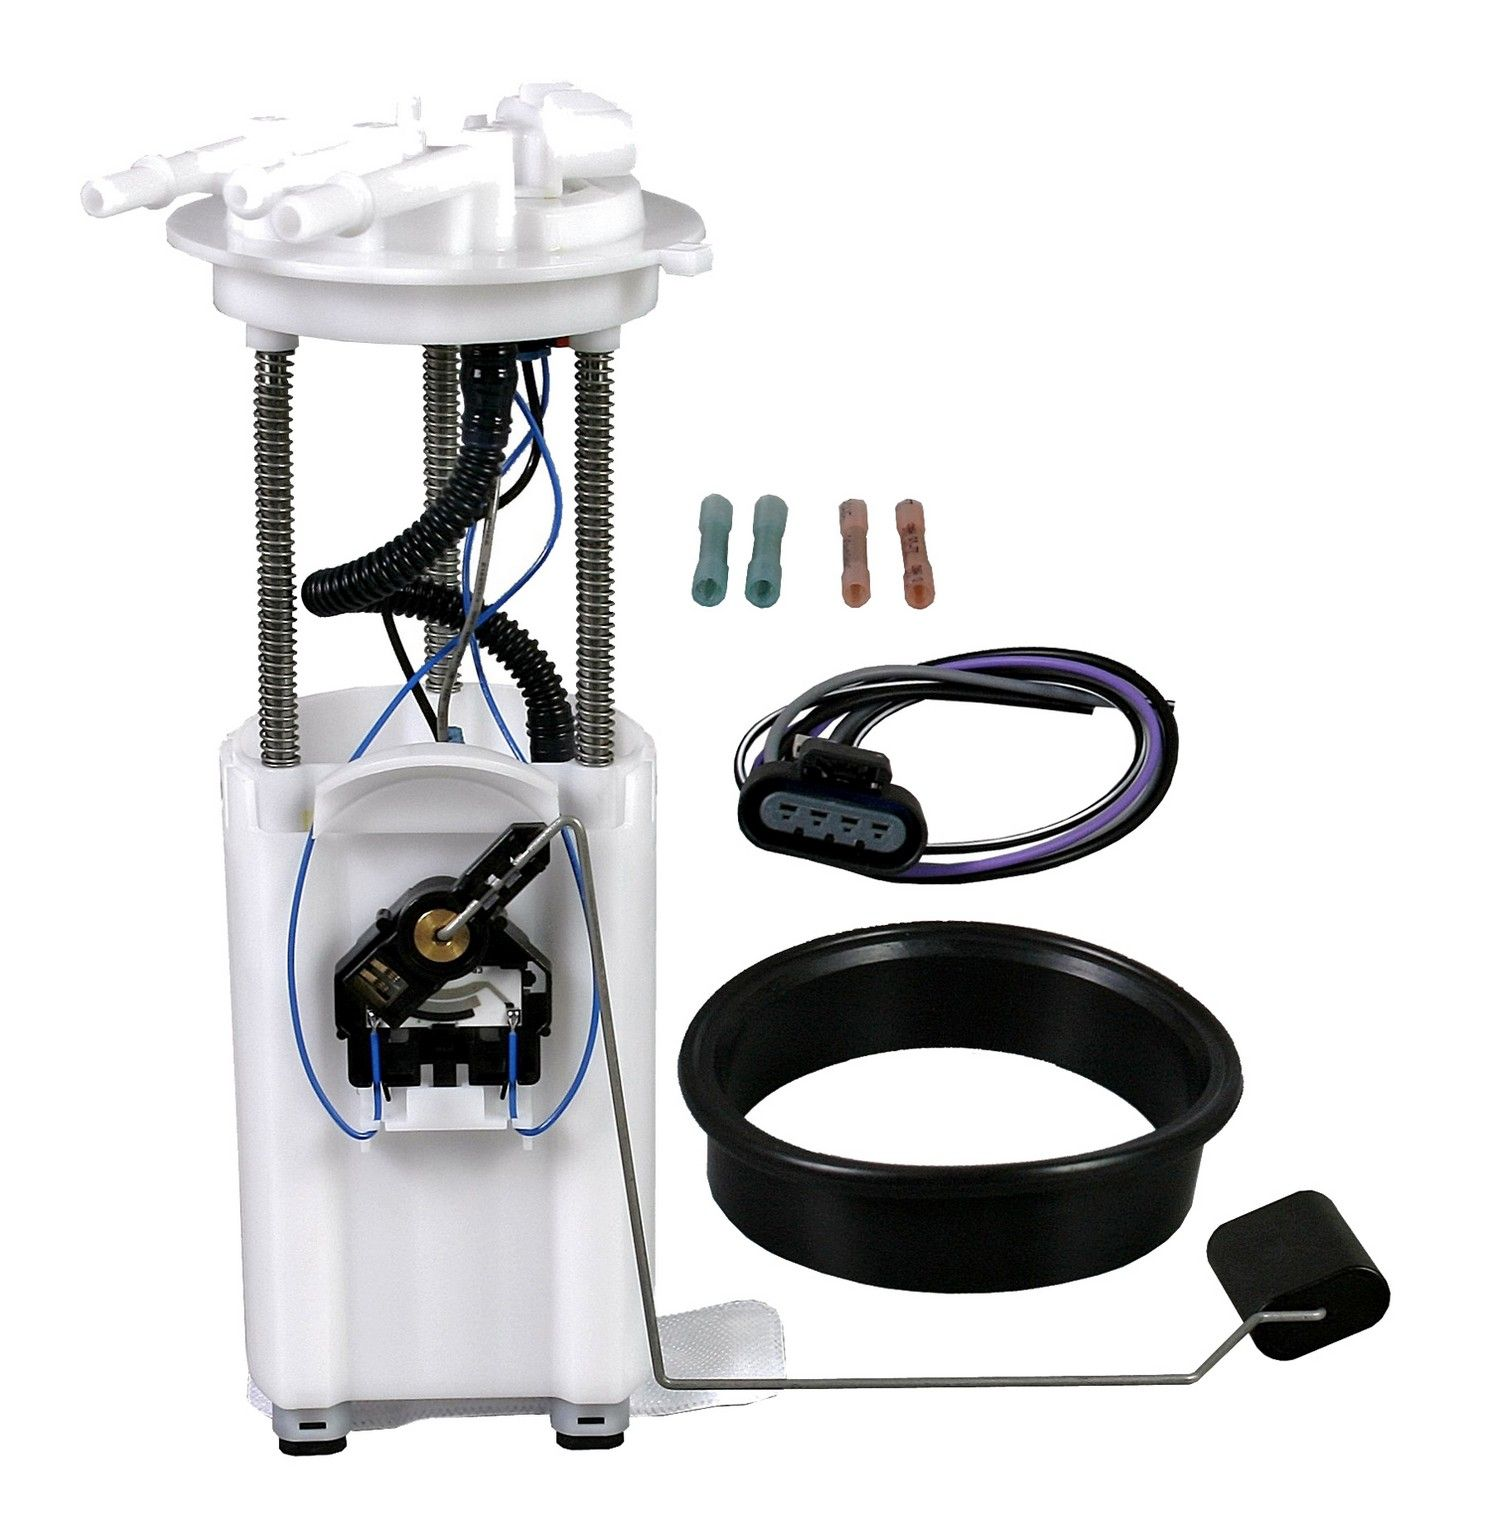 Cadillac Escalade Fuel Pump Module Assembly Replacement Acdelco 1948 Wiring Harness Includes Sending Unit Float Reservoir Strainer Upgraded And Tank Seal Included